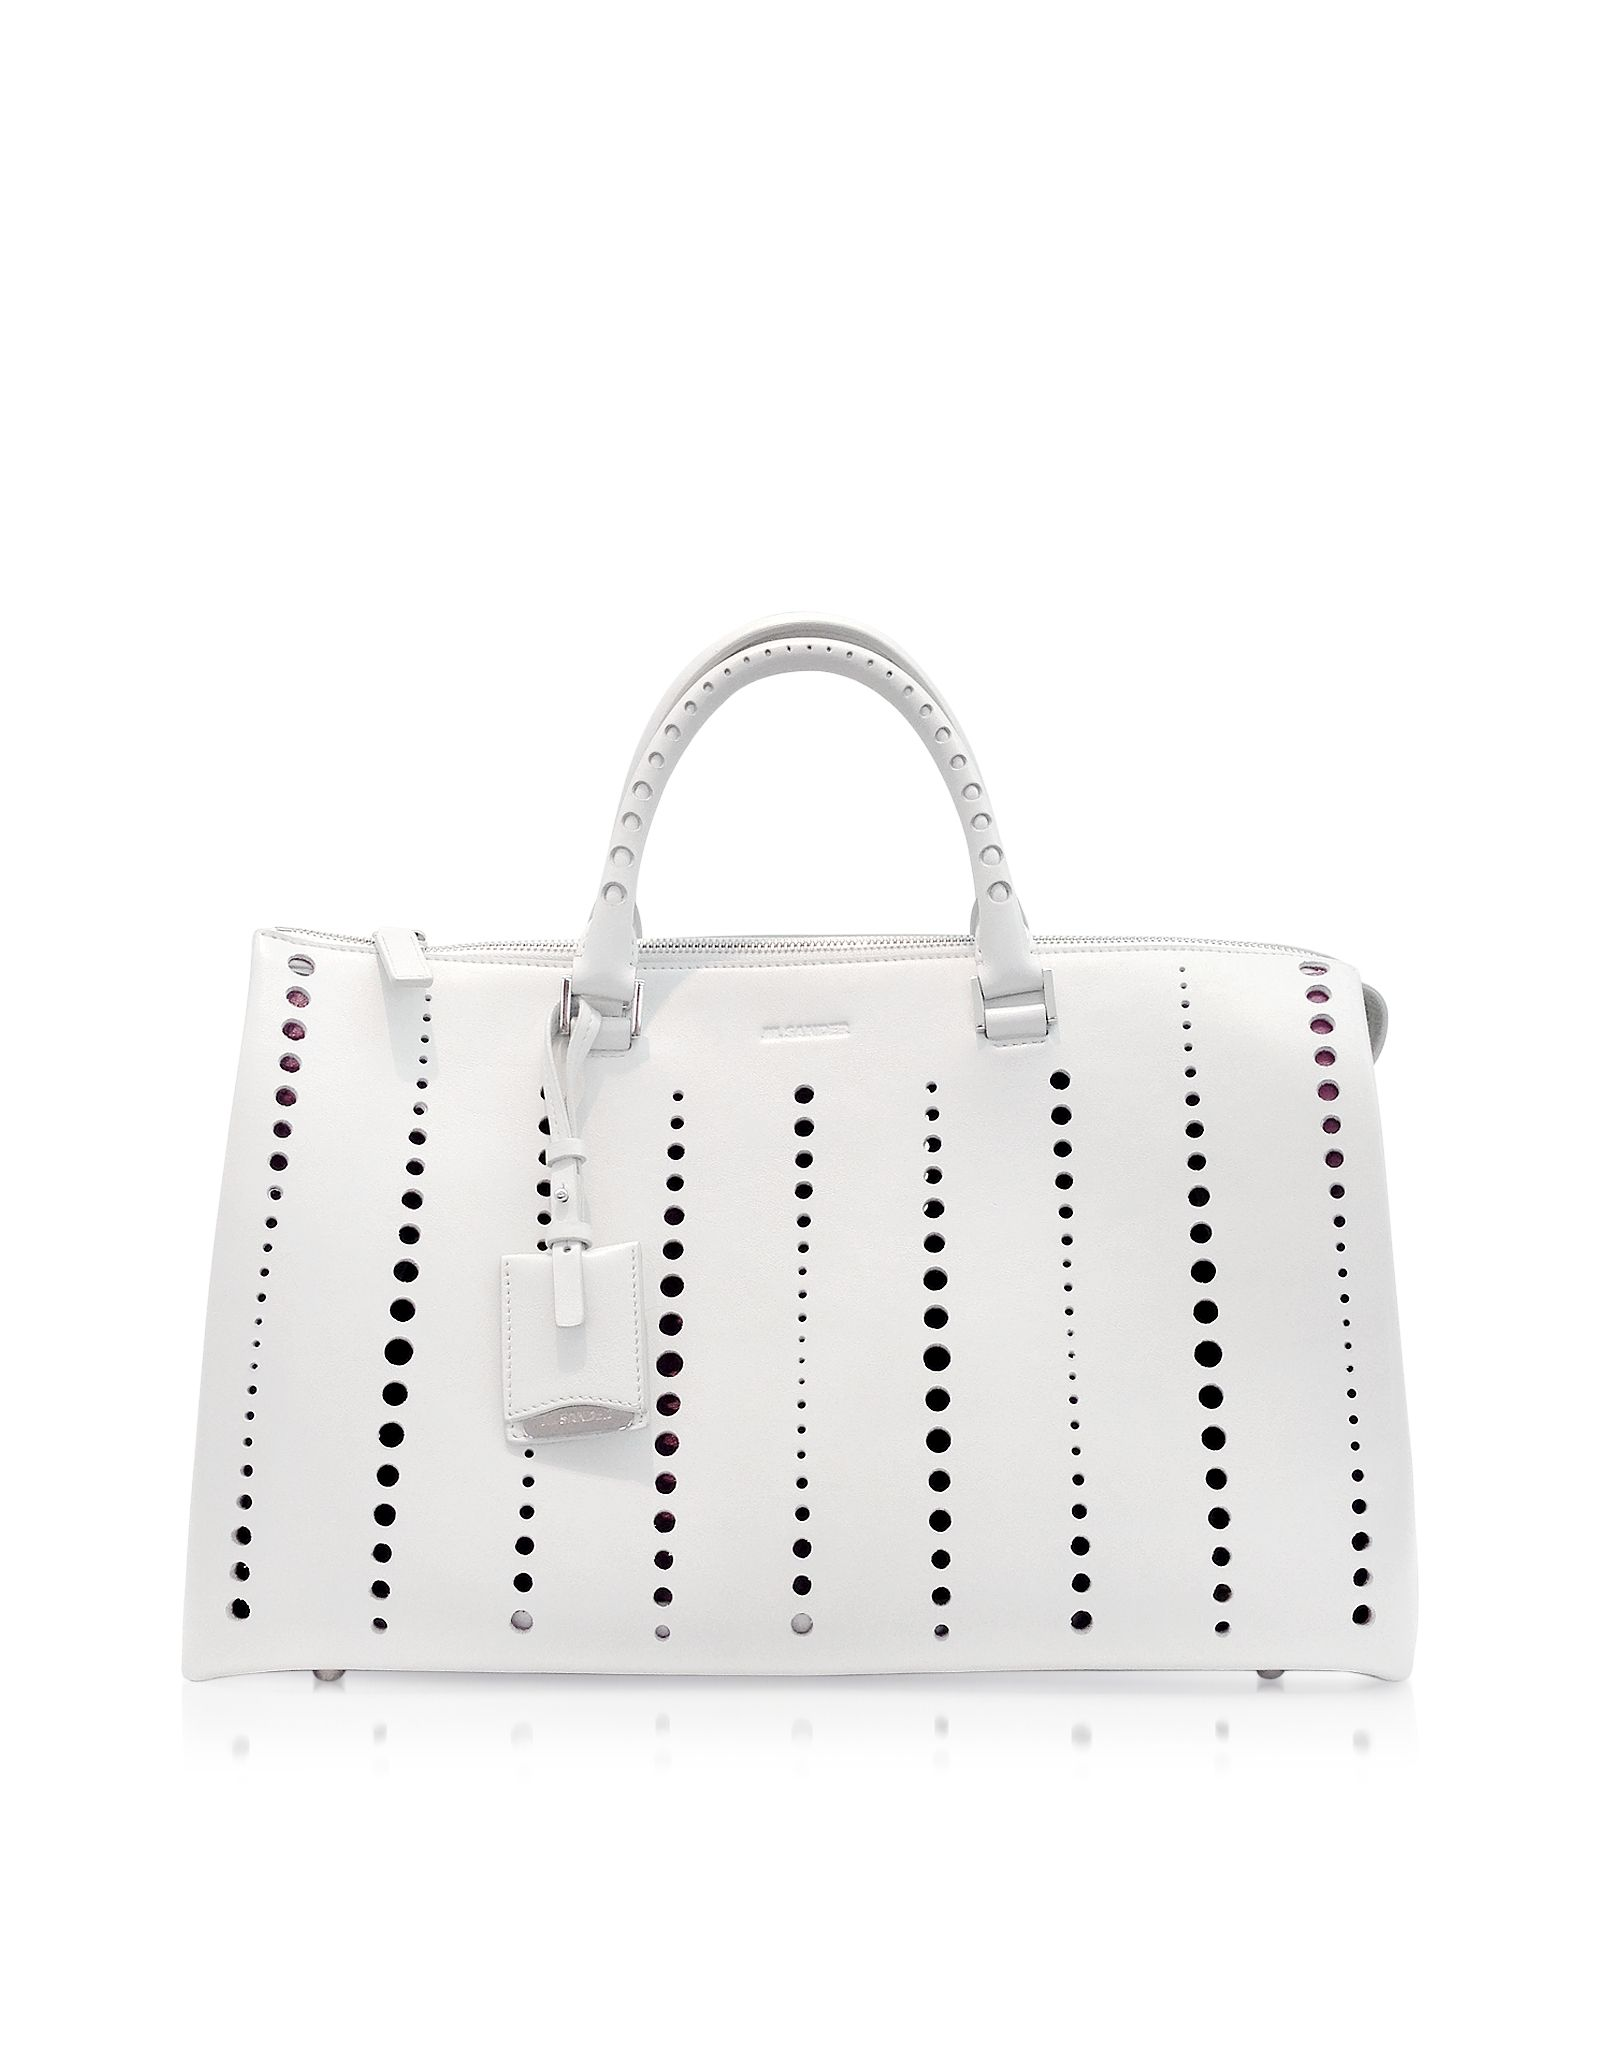 Jil Sander Large Bag Open White Perforated Leather Satchel At Forzieri